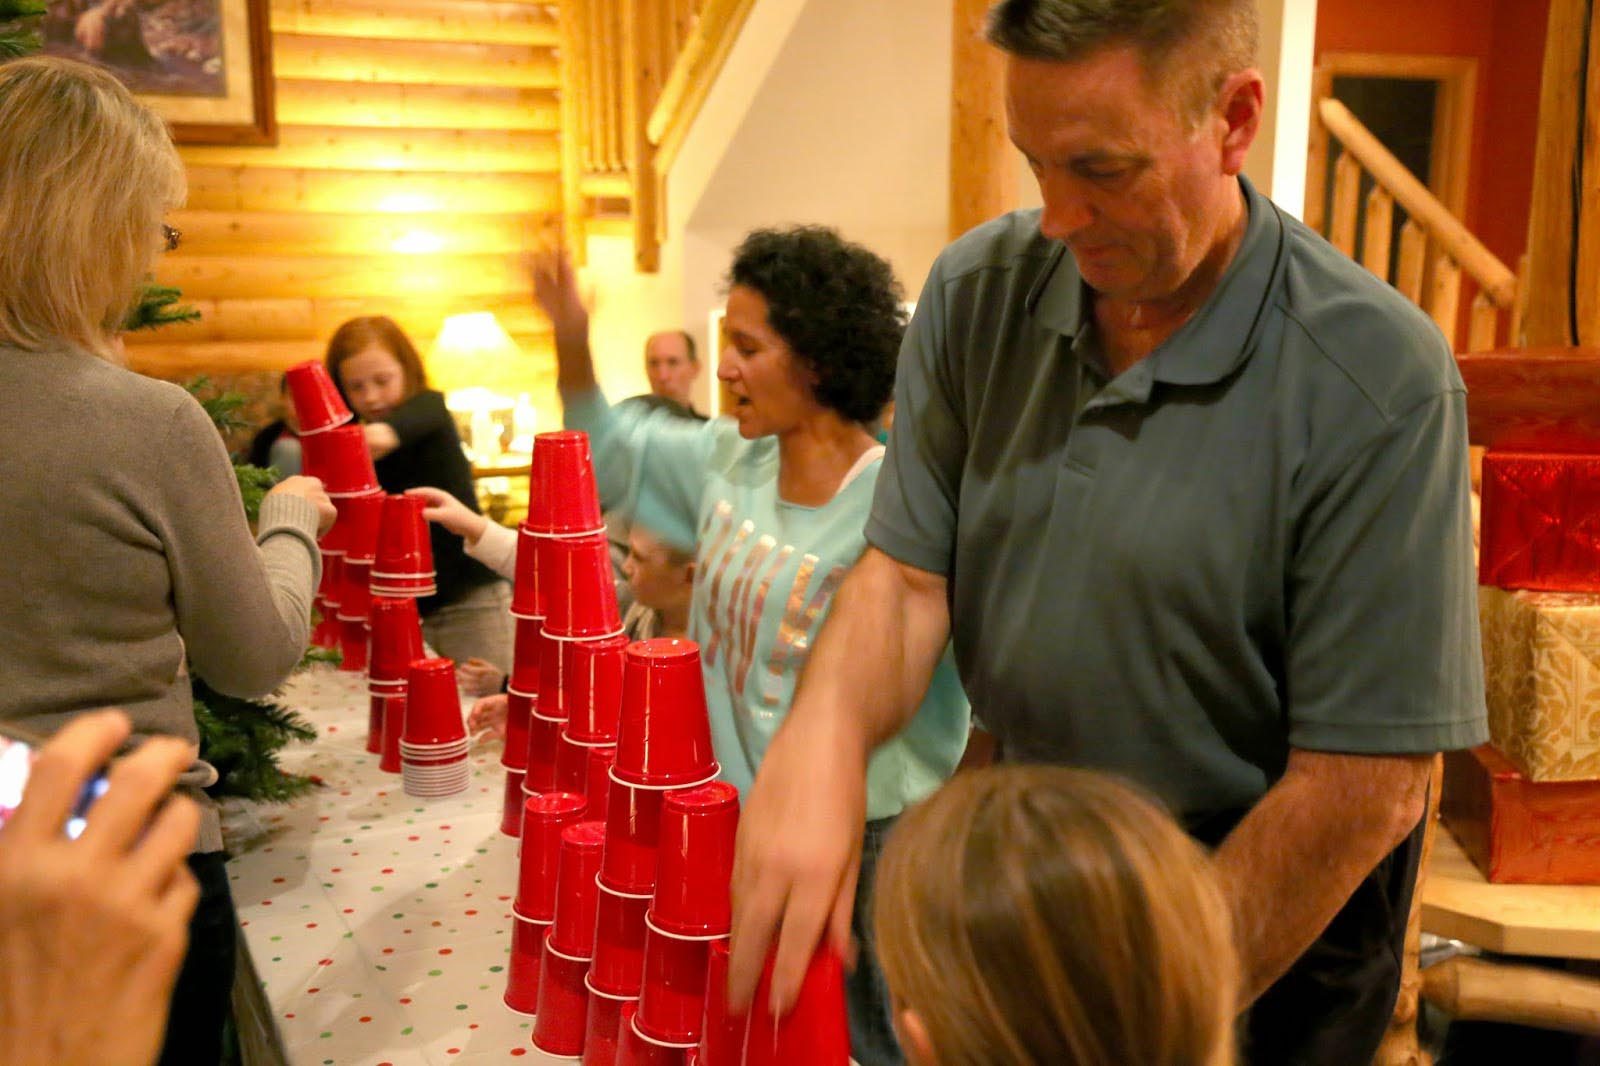 Family Party 30 Games